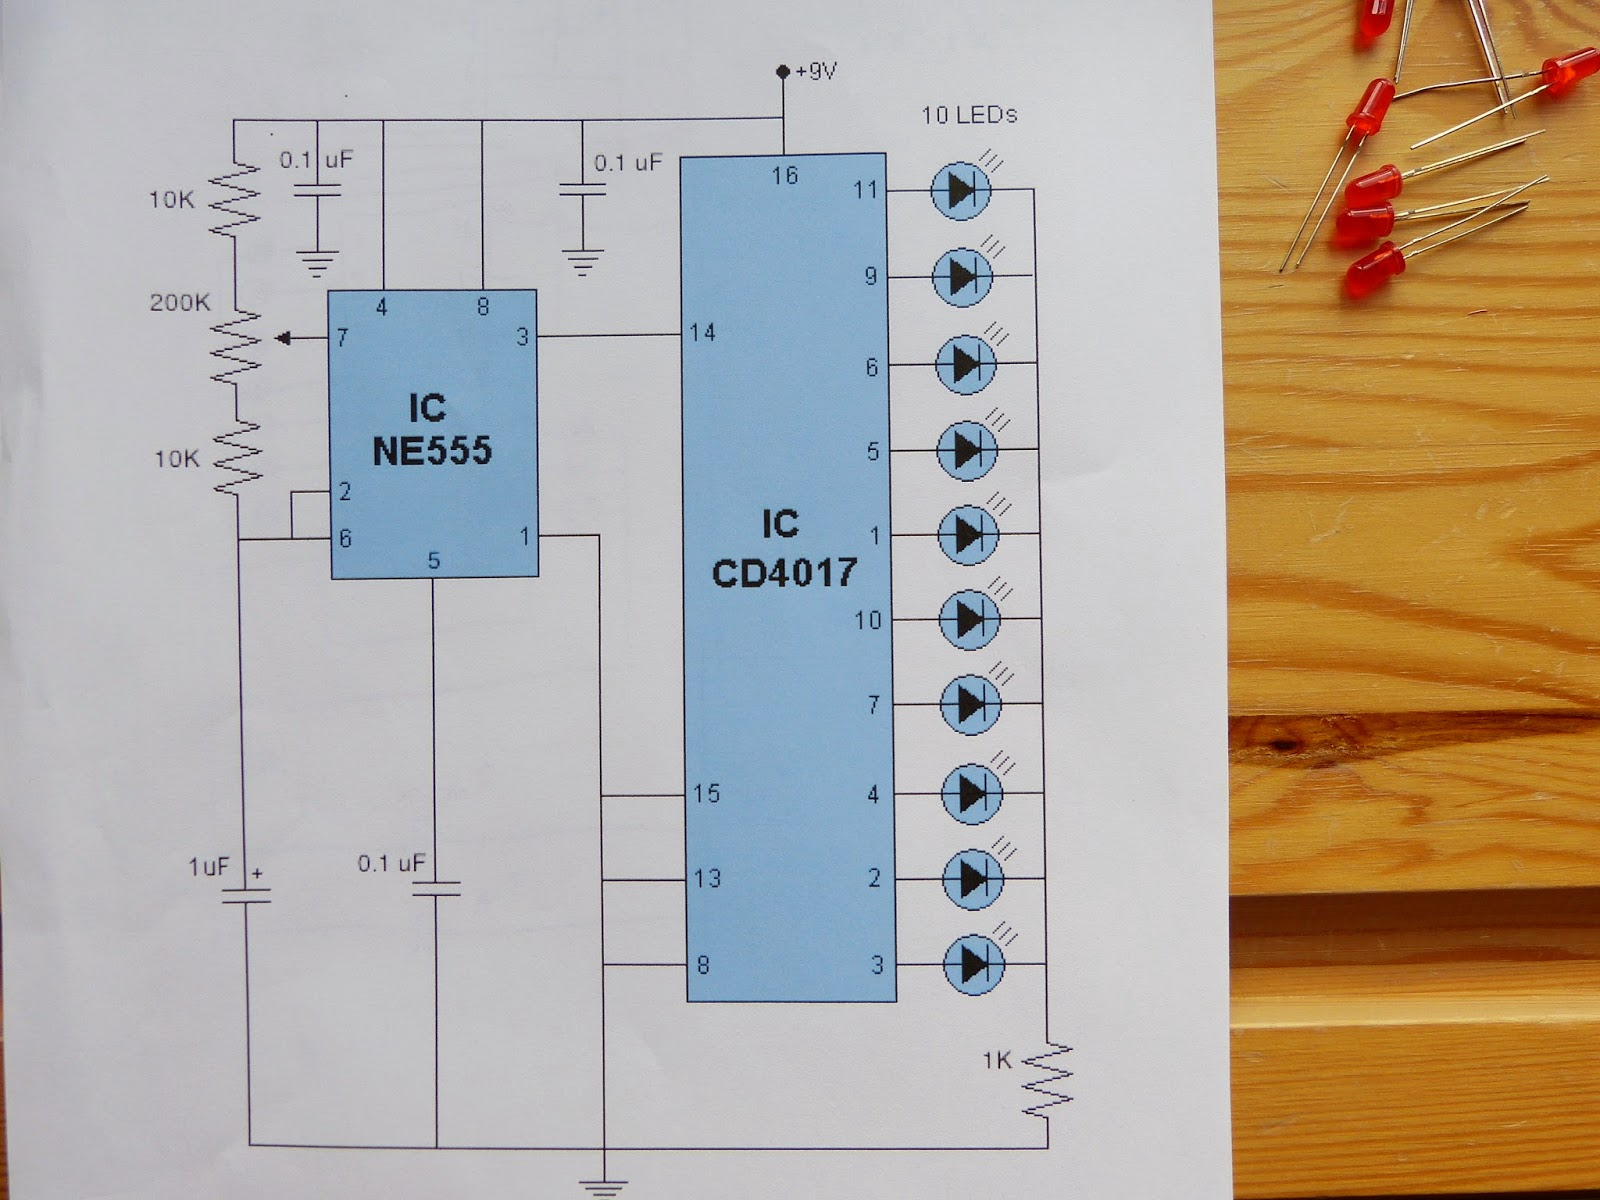 Electronics Page 5 Homehack Random Number With Cd4017 Print Out Of The Schematics Led Chaser Found On Makezine